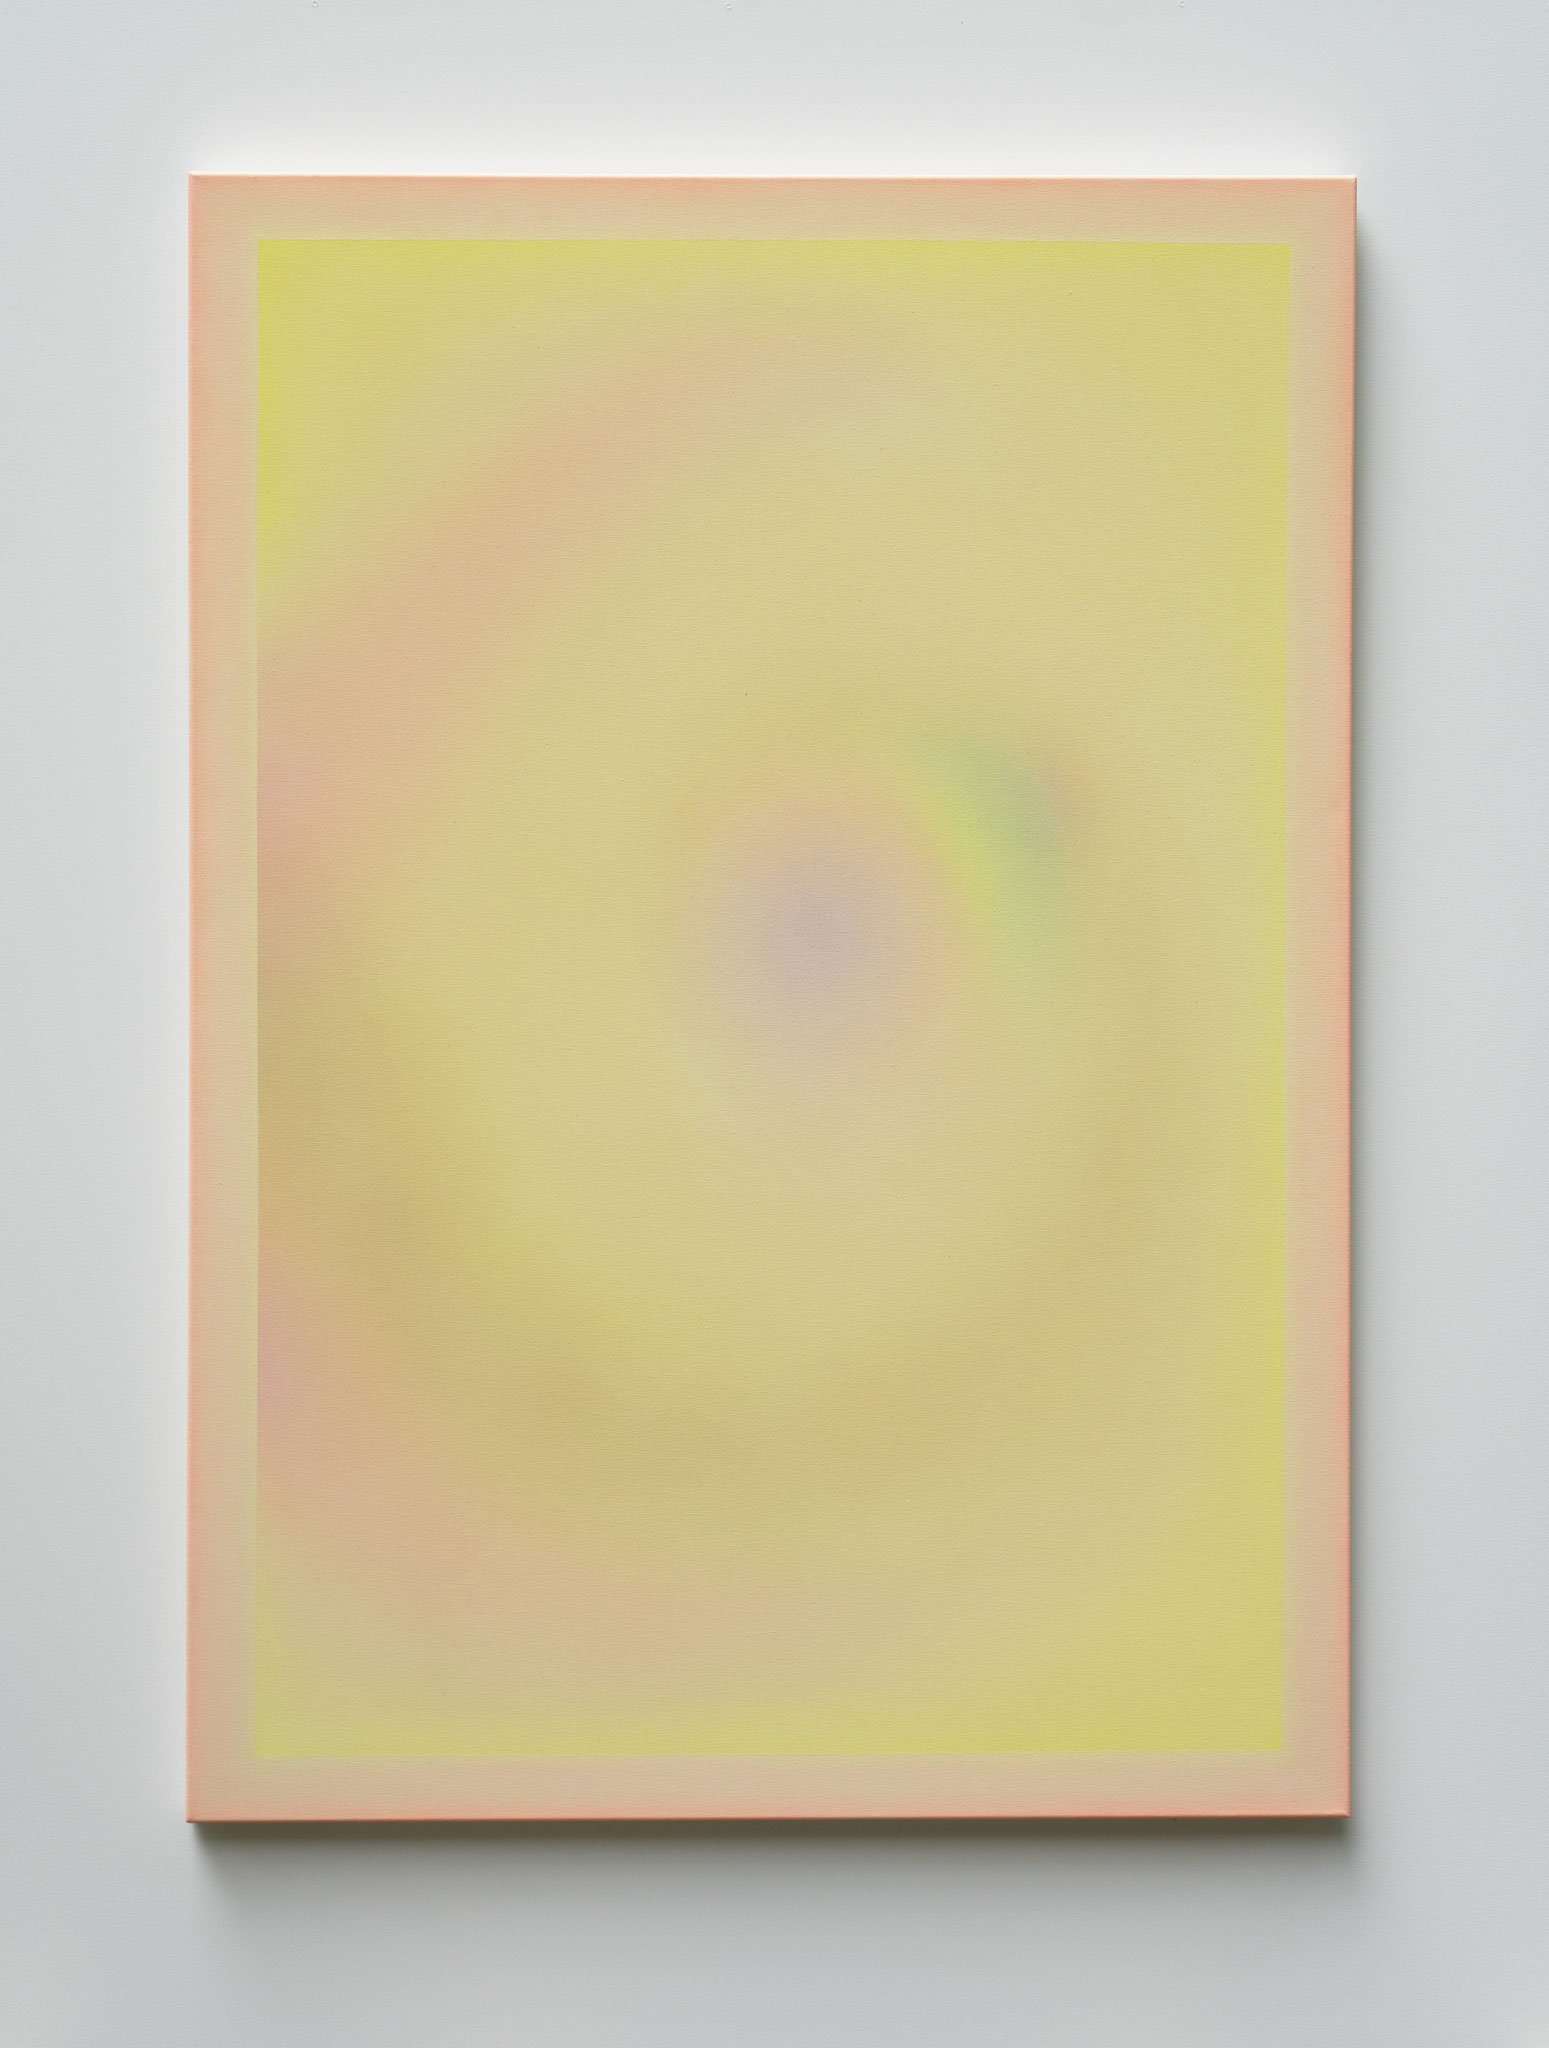 "Alina Birkner ""Untitled (Spherical Breath)"" 2020, 170x120 cm, Acrylic on Canvas"